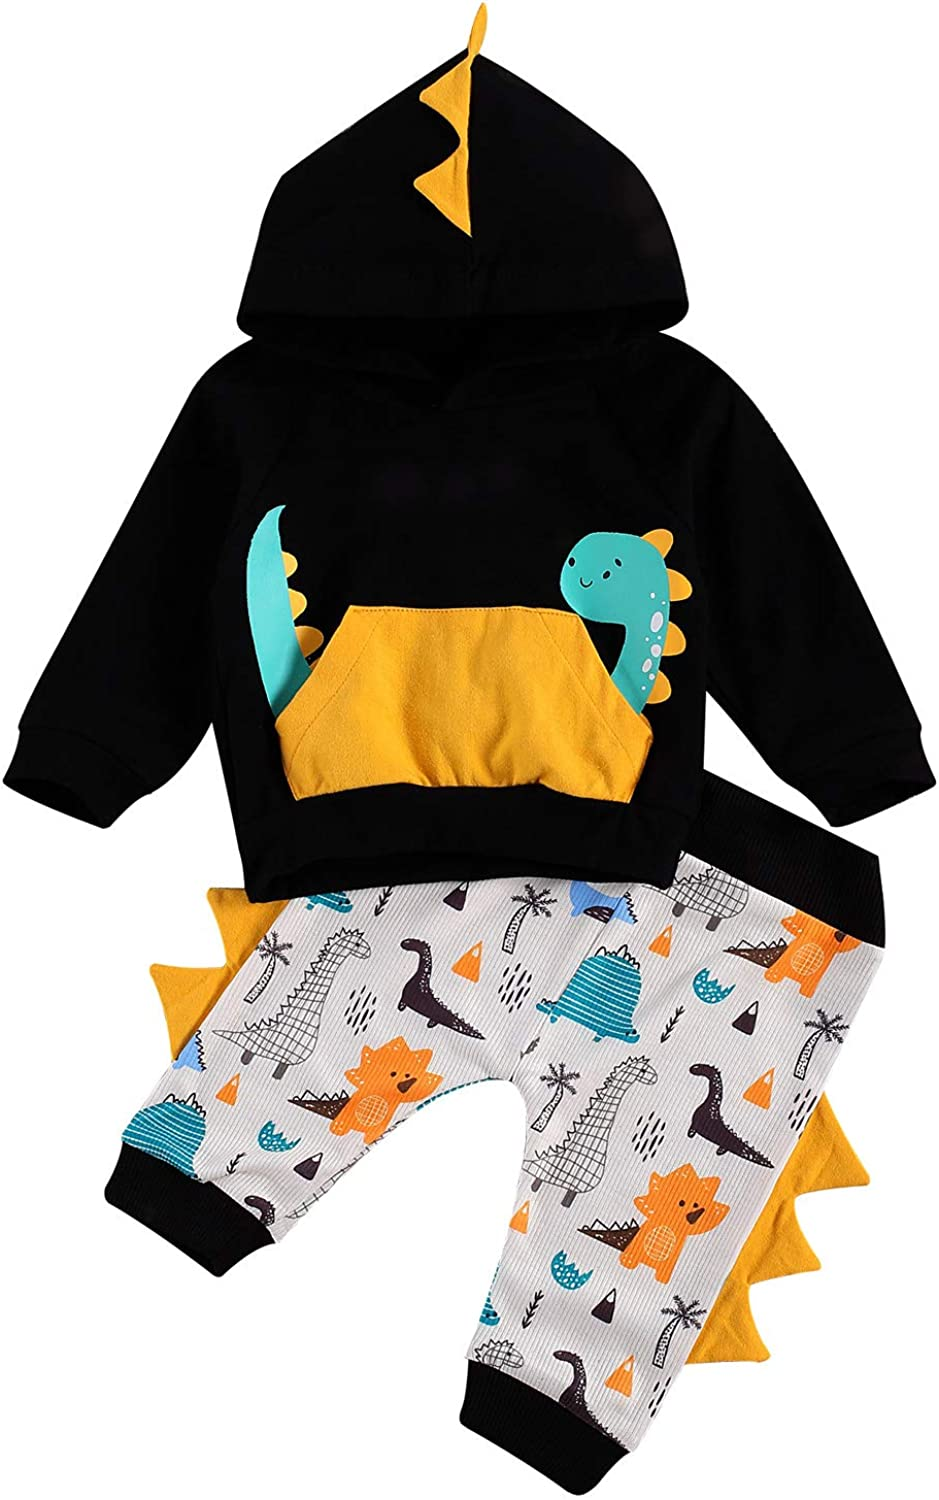 2Pcs Infant Baby Boy Outfits Long Sleeve Little Dinosaur Printed Hoodie Sweatshirt Pants Fall Winter Clothes Set